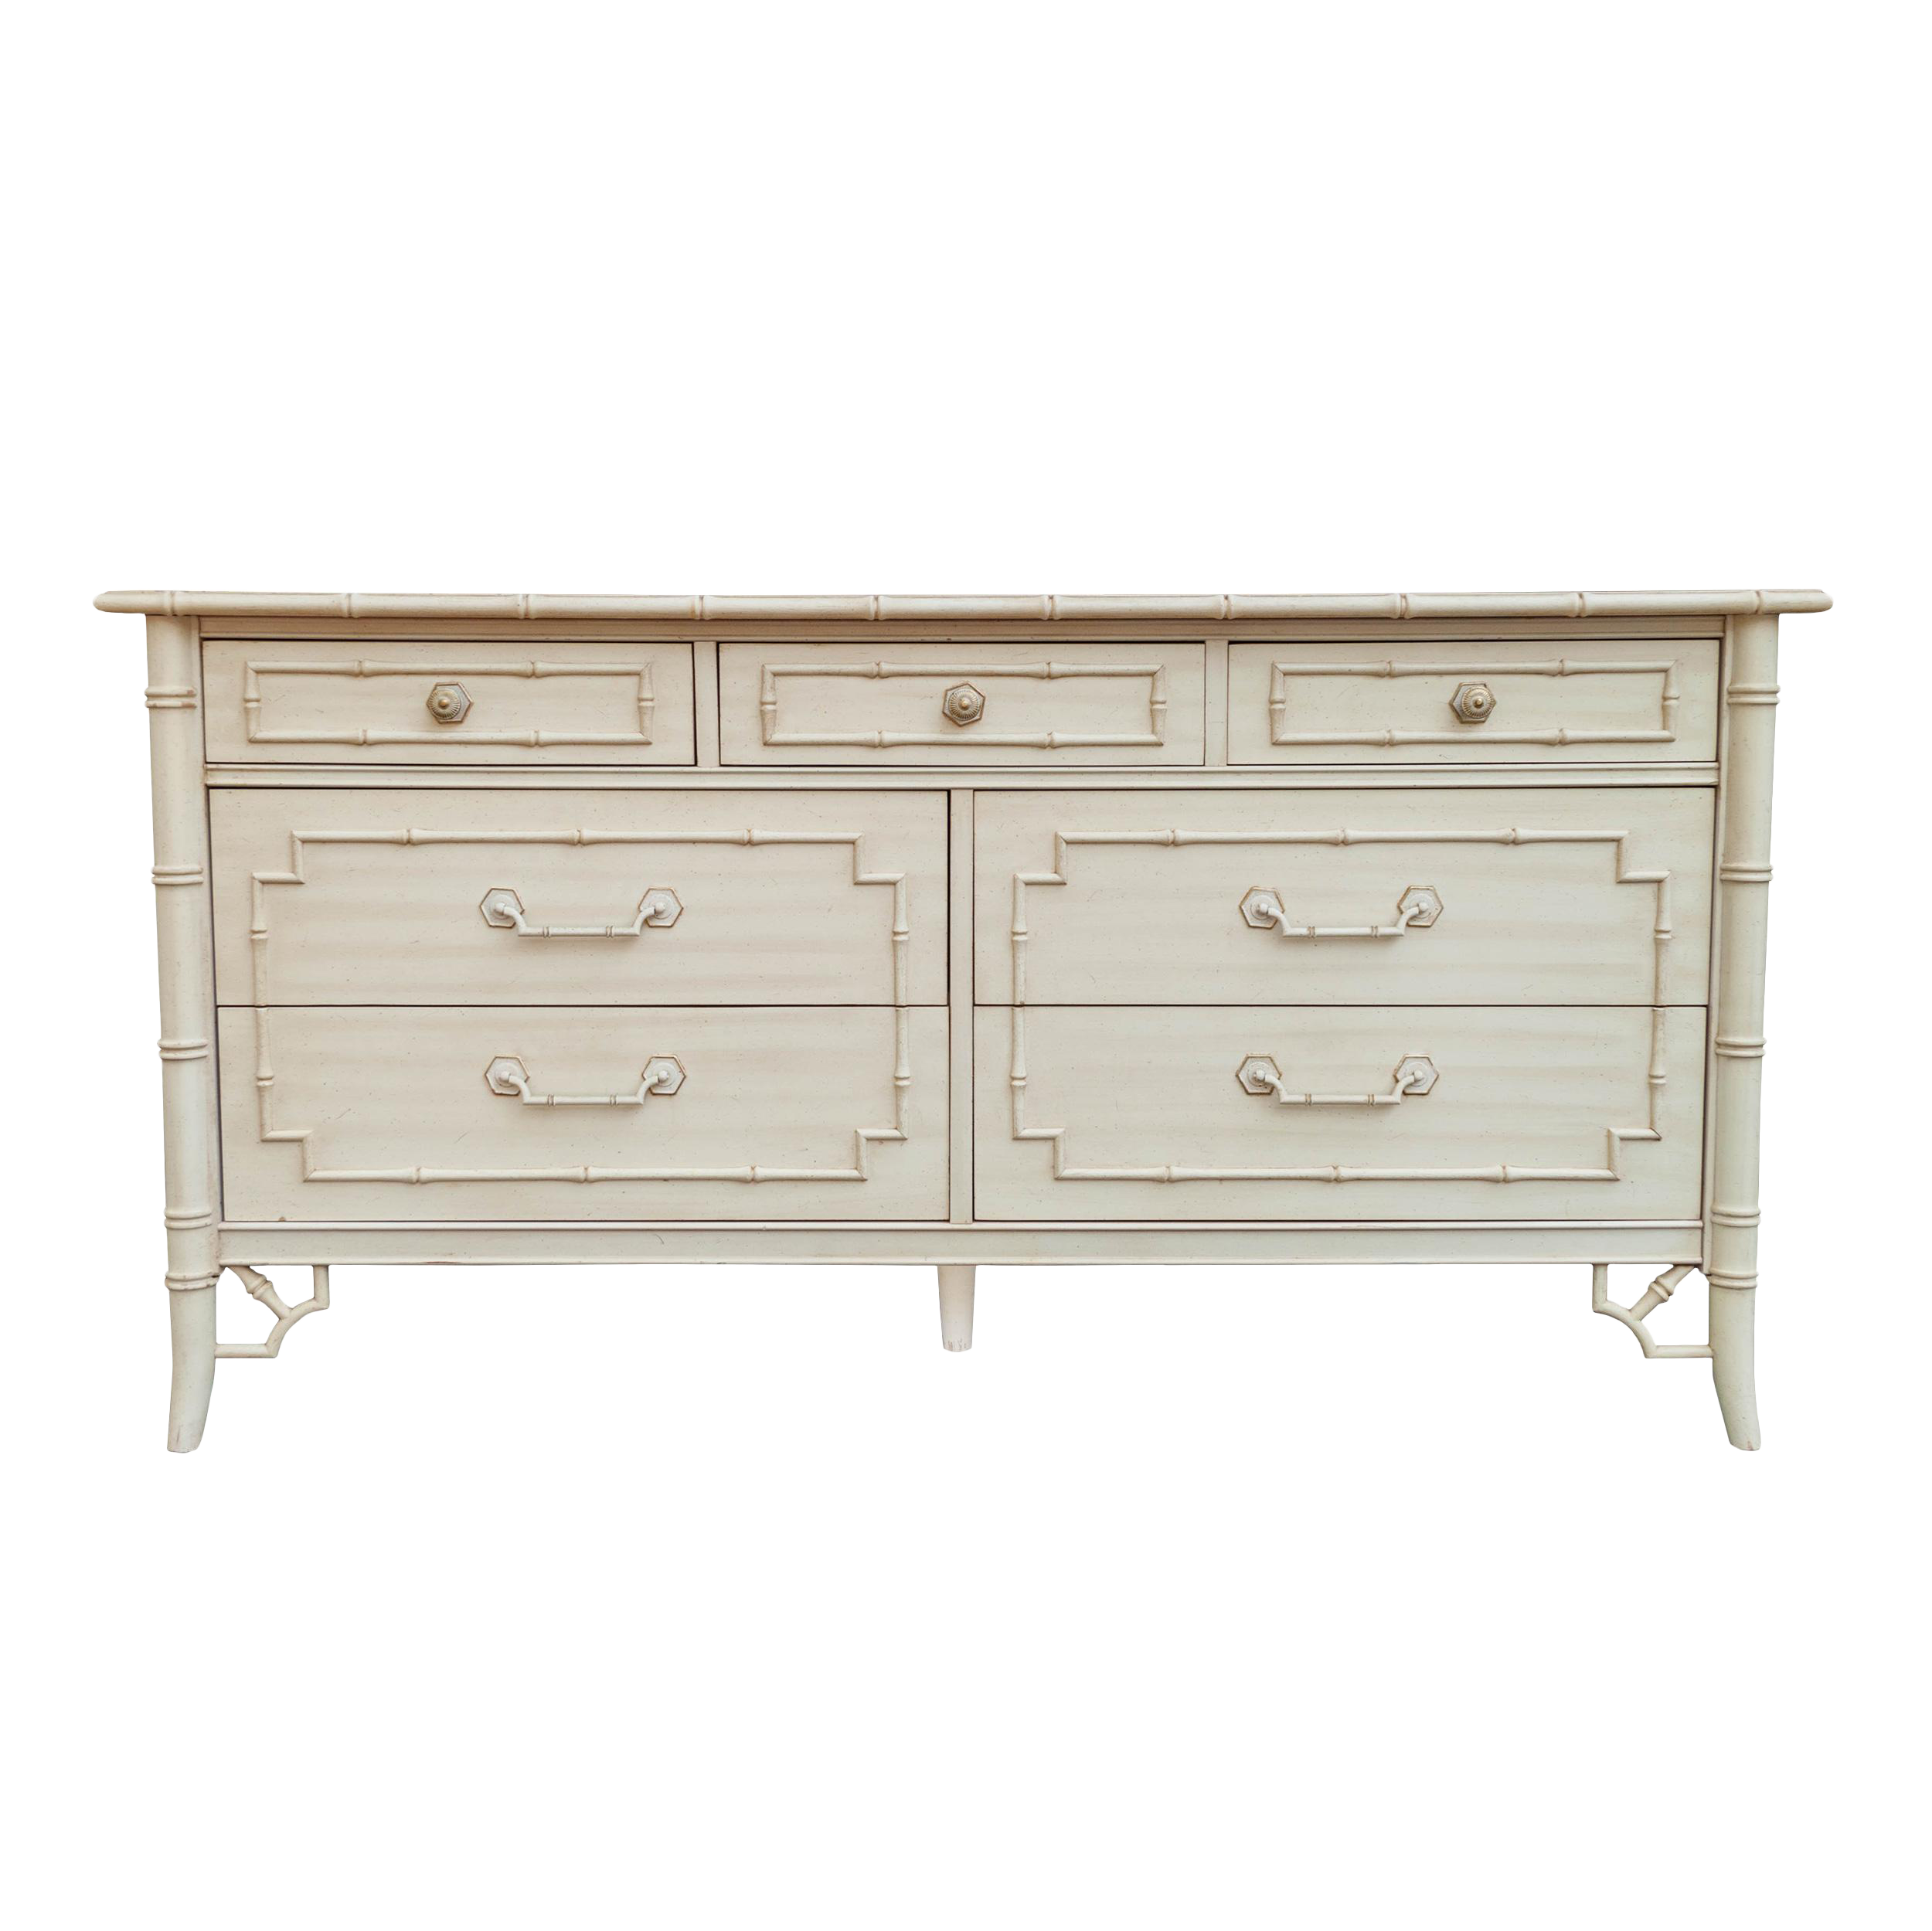 Gently used thomasville furniture up to 40 off at chairish vintage thomasville faux bamboo dresser geotapseo Choice Image